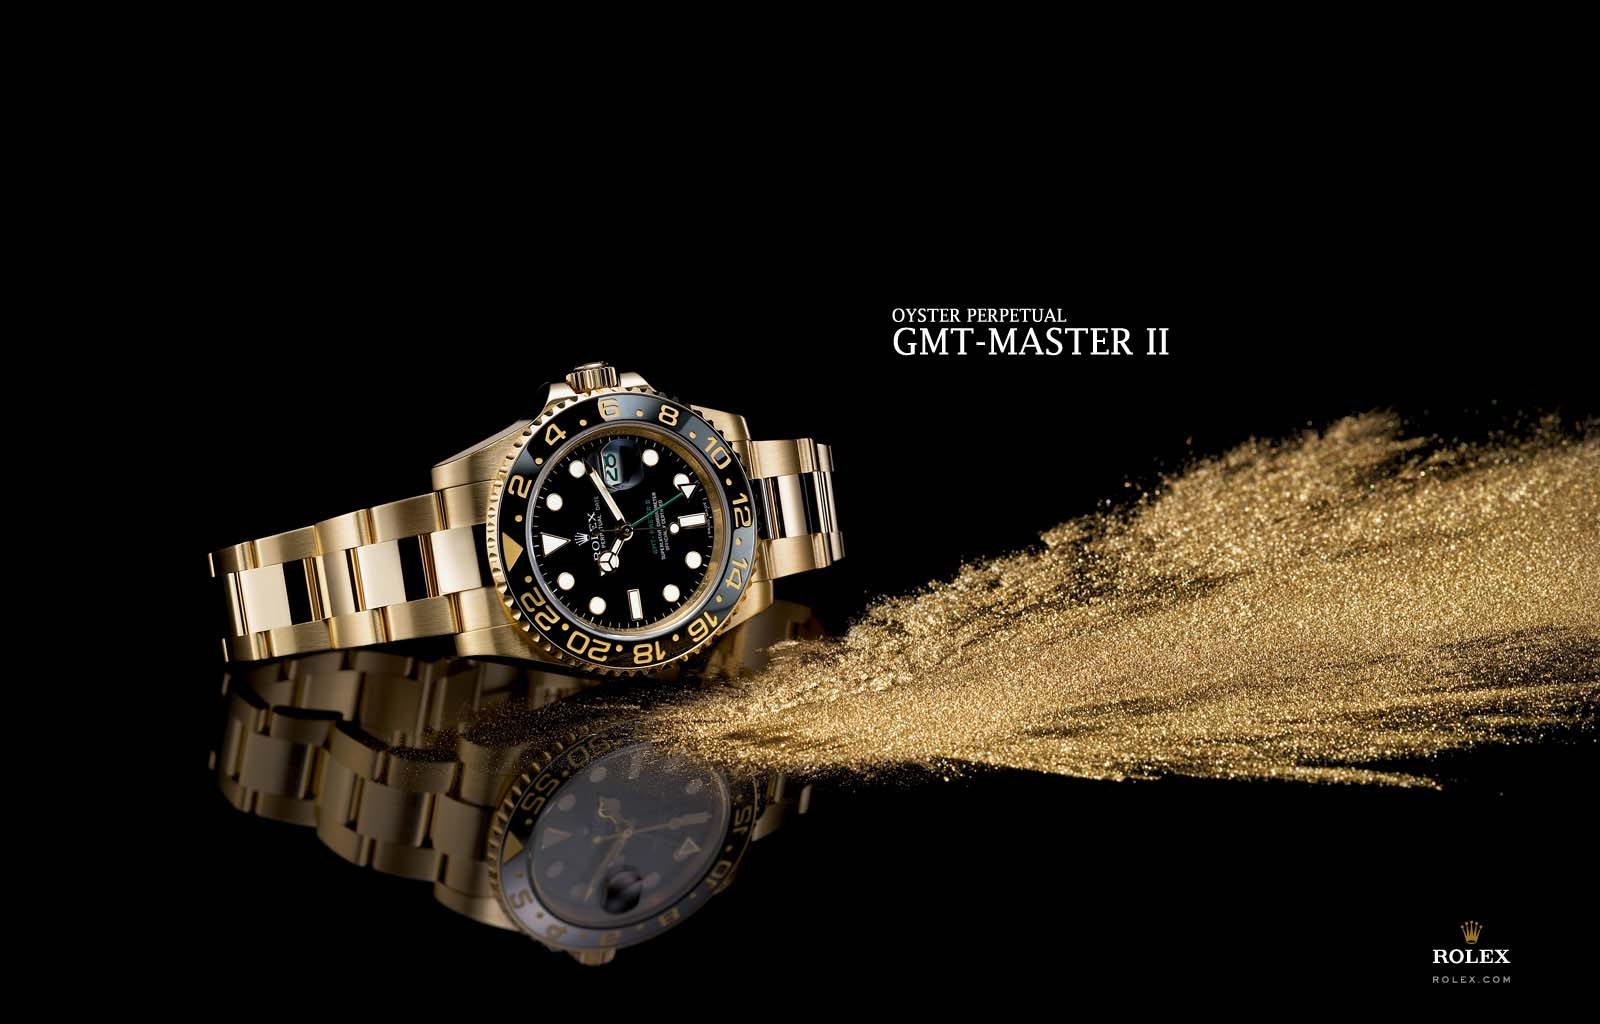 Diamond Rolex Wallpapers - Wallpaper Cave